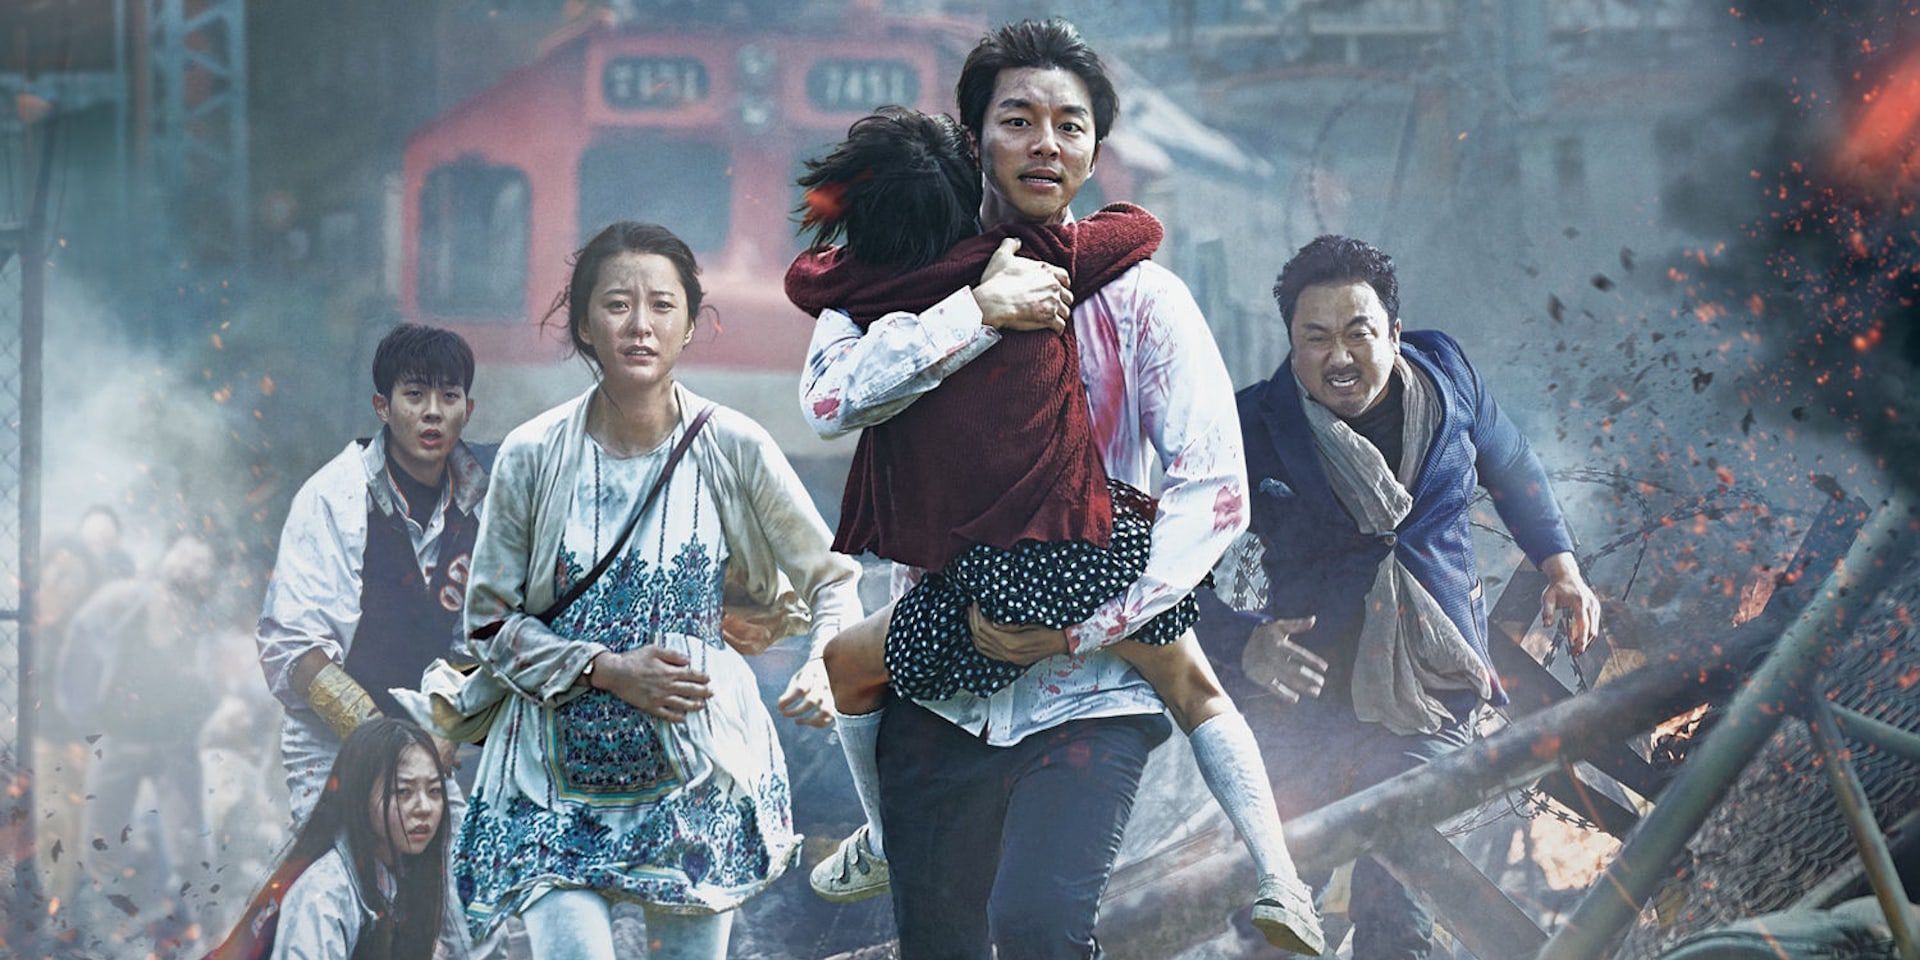 Train To Busan 2: Release Date, Trailer & Story Details